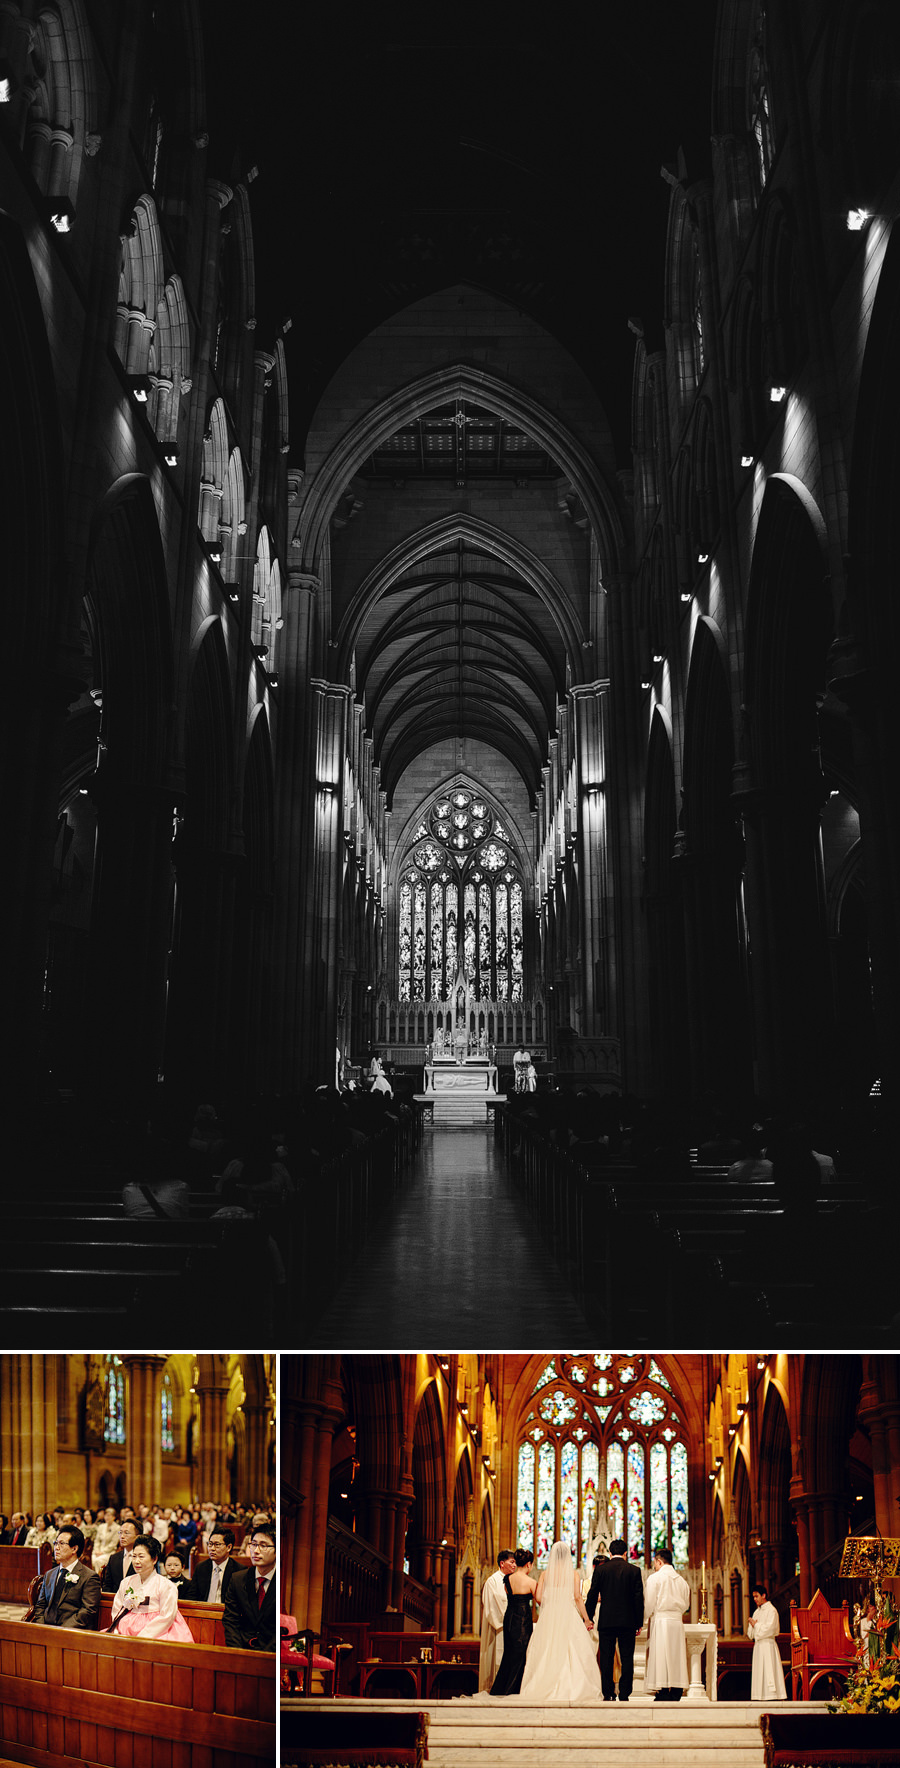 St Marys Cathedral Sydney Wedding Photographer: Aisle